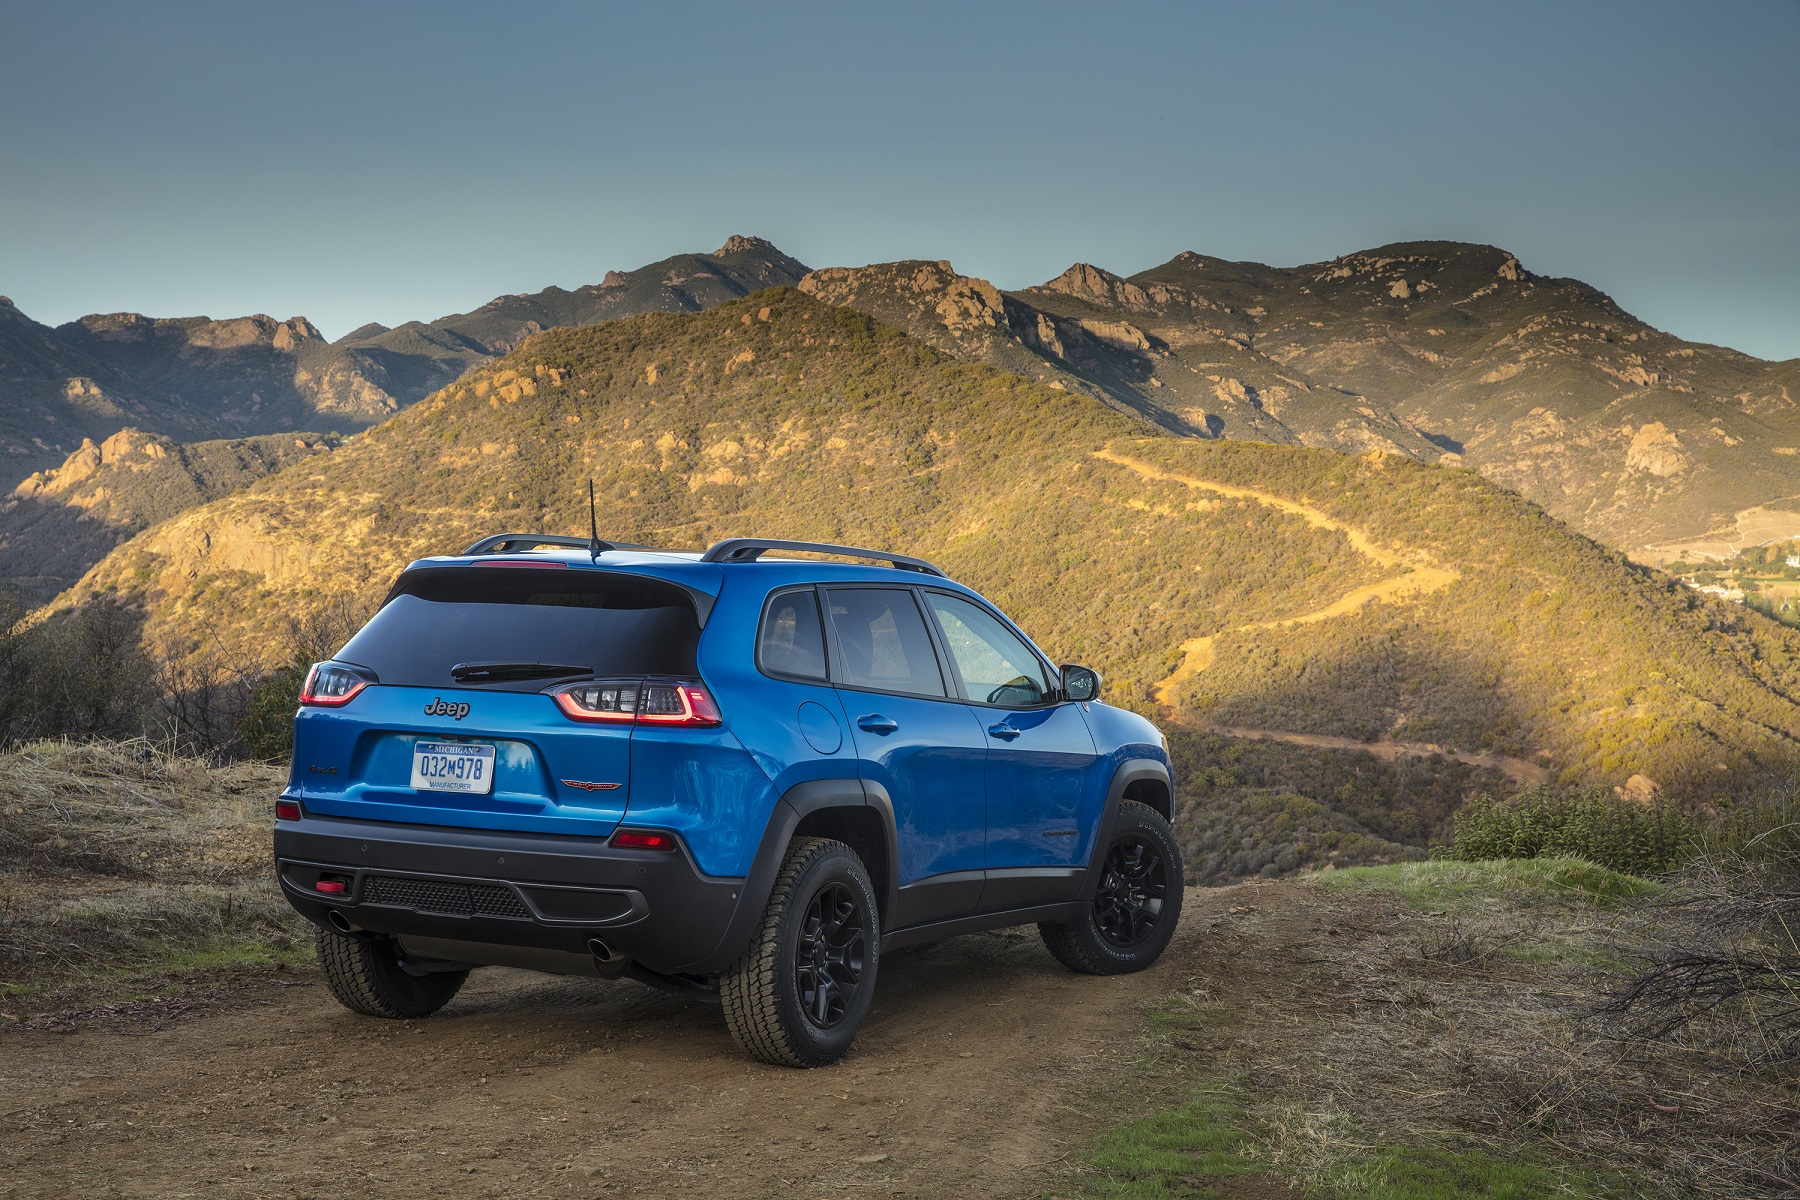 Manufacturer photo: The 2019 Jeep Cherokee boasts a new, authentic and more premium design, along with the addition of an all-new, advanced 2.0-liter direct-injection inline four-cylinder engine that enhances performance and fuel efficiency